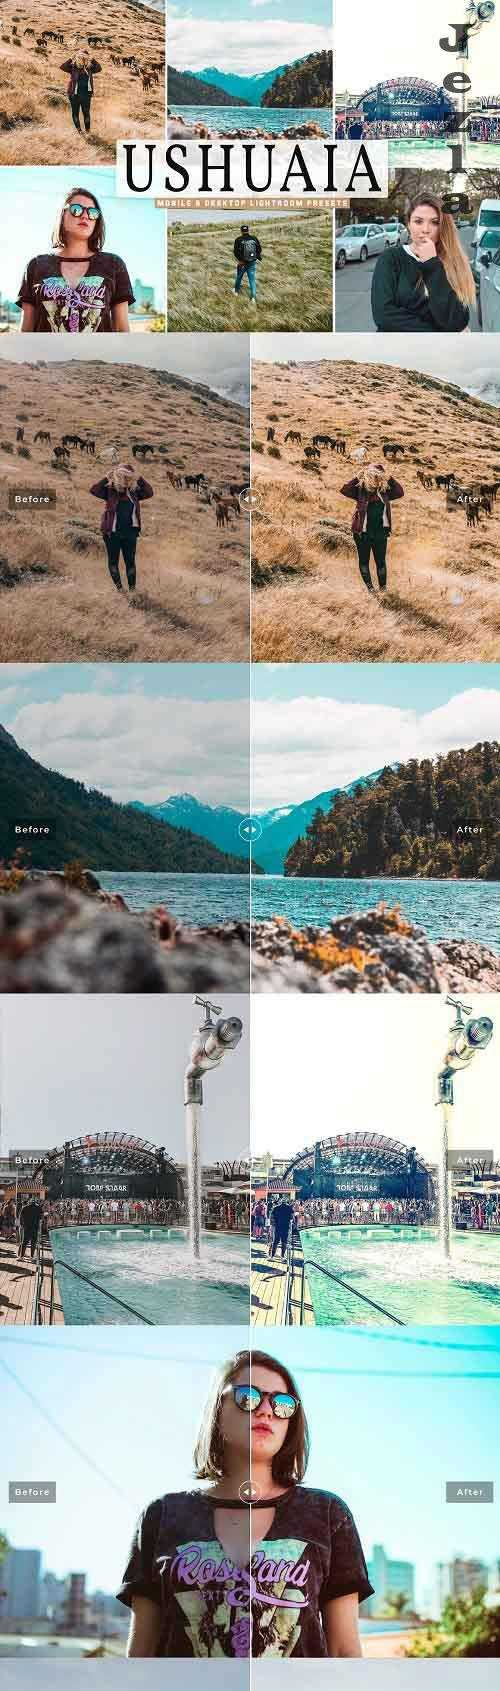 Ushuaia Pro Lightroom Presets – 5300031 – Mobile & Desktop